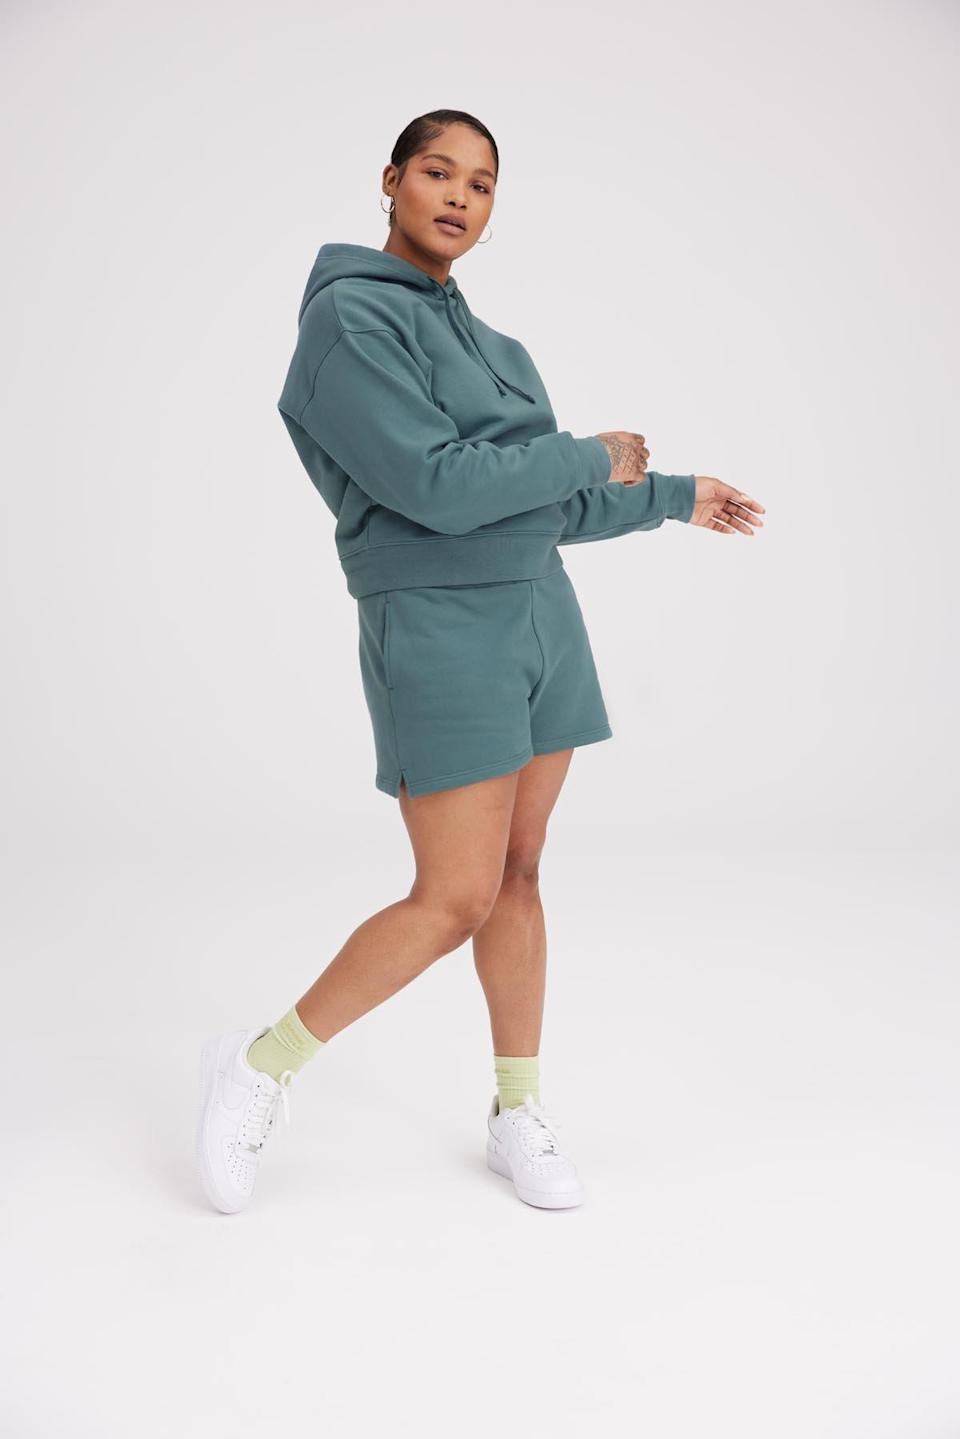 "Girlfriend Collective can't keep these shorts in stock, so grab a pair while you still can. The teal hue is on-point for spring—imagine how cute you'd look posing next to a cherry blossom tree. $52, Girlfriend Collective. <a href=""https://www.girlfriend.com/collections/sweatsuits/products/lagoon-classic-sweat-short?variant=39255781703743"" rel=""nofollow noopener"" target=""_blank"" data-ylk=""slk:Get it now!"" class=""link rapid-noclick-resp"">Get it now!</a>"